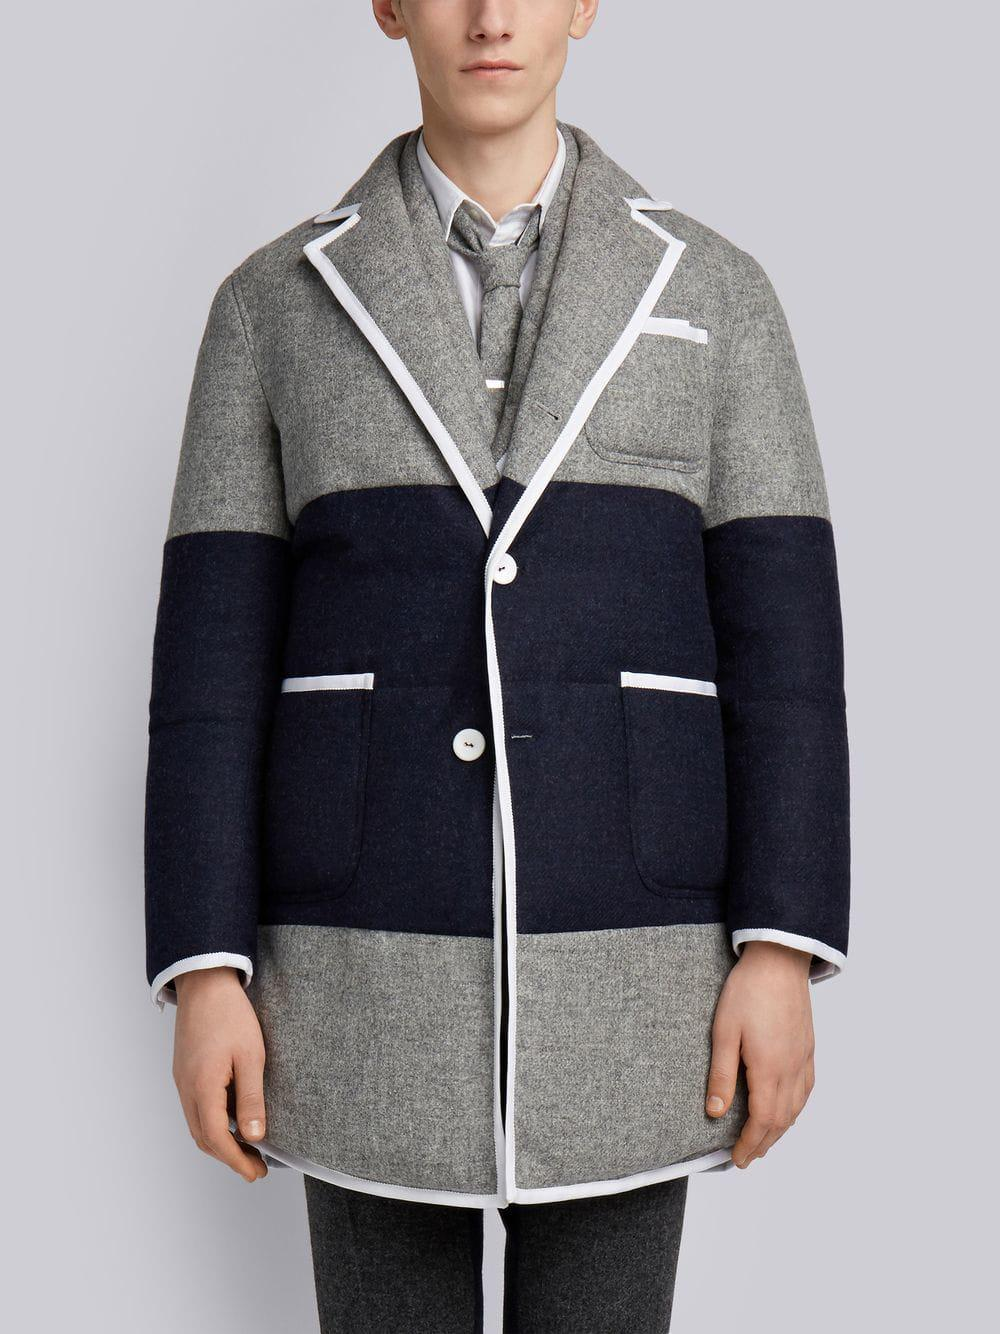 Thom Browne Zweifarbiger Mantel In 055 Light Grey